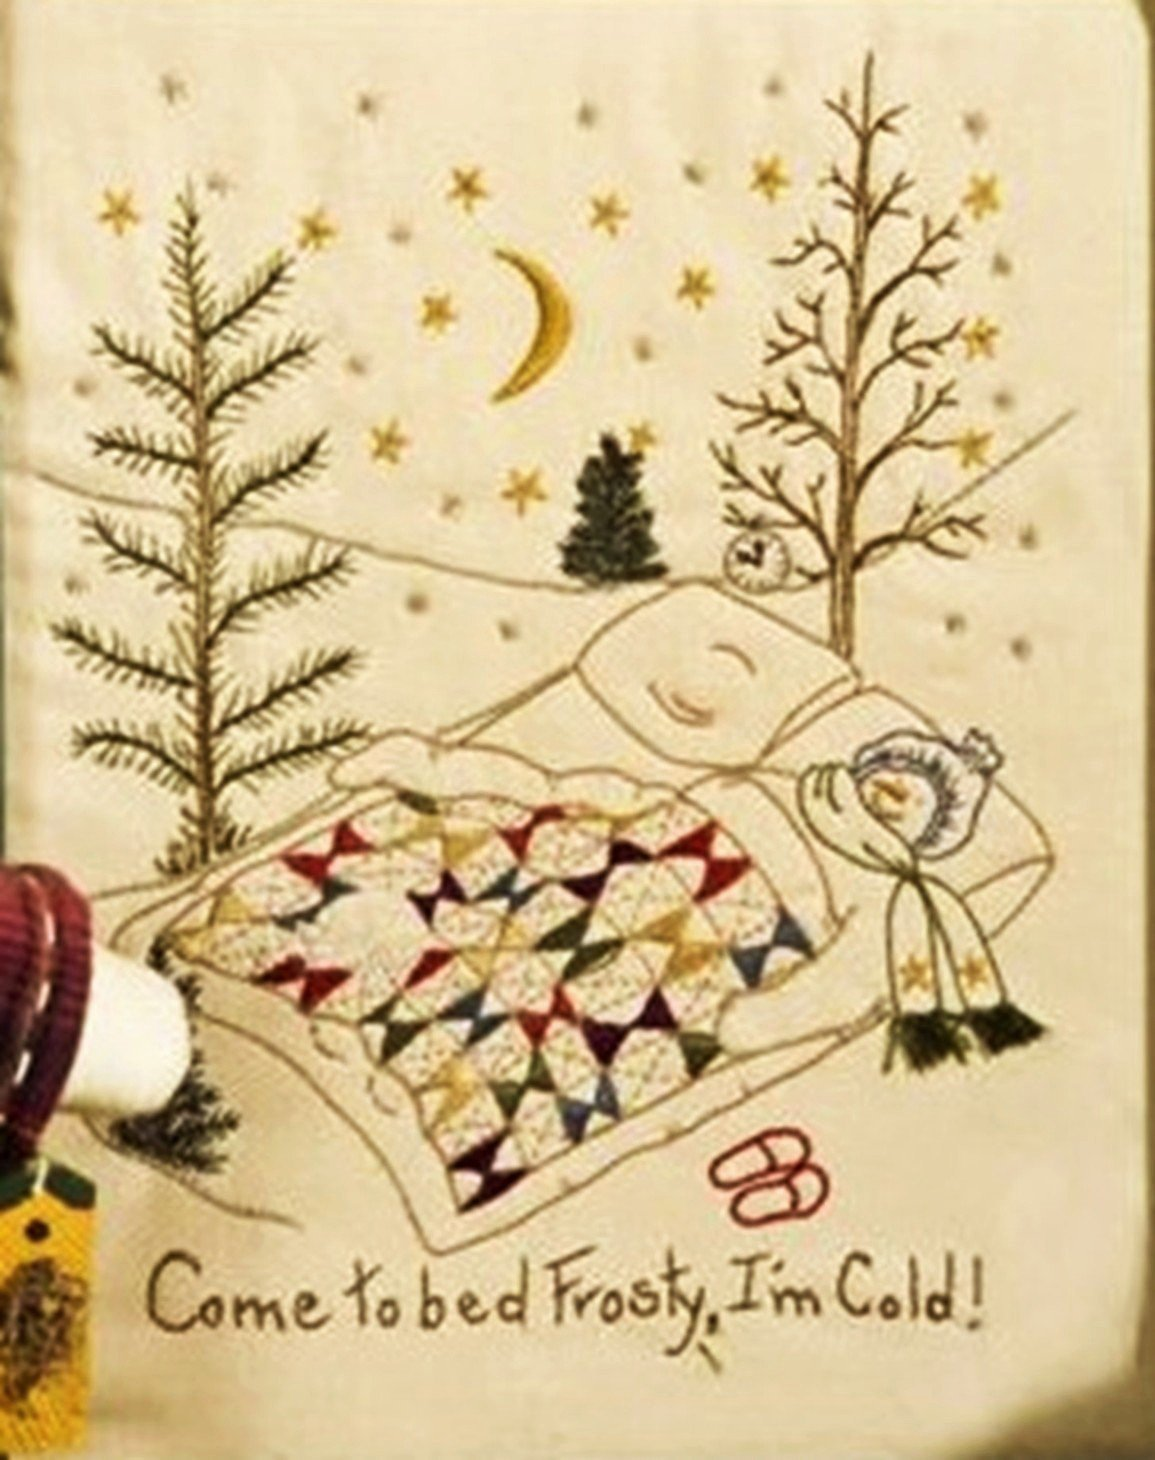 Come To Bed Frosty, I'm Cold Machine Embroidery